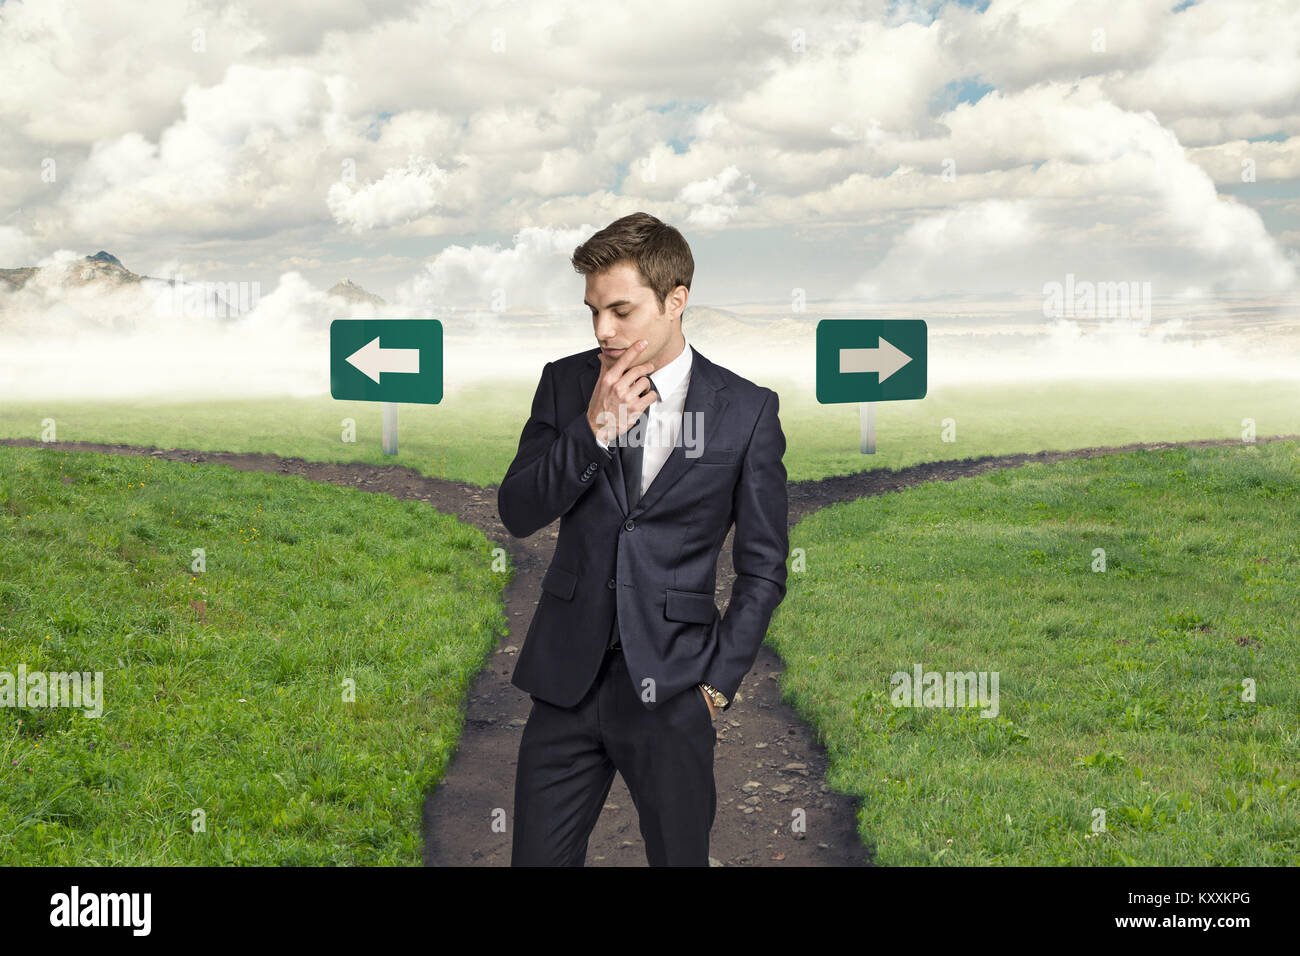 thinking man and crossroads way on background - Stock Image